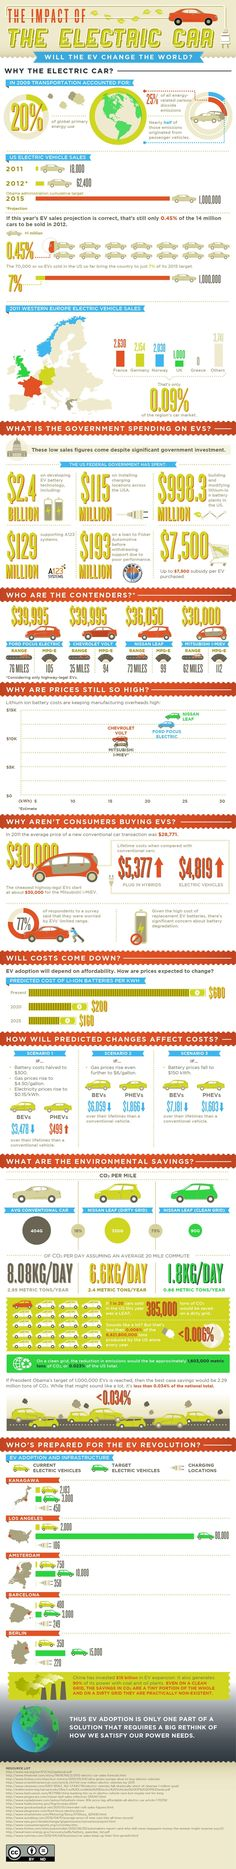 Great example of Green Innovation - The Impact of the Electric Car infographic